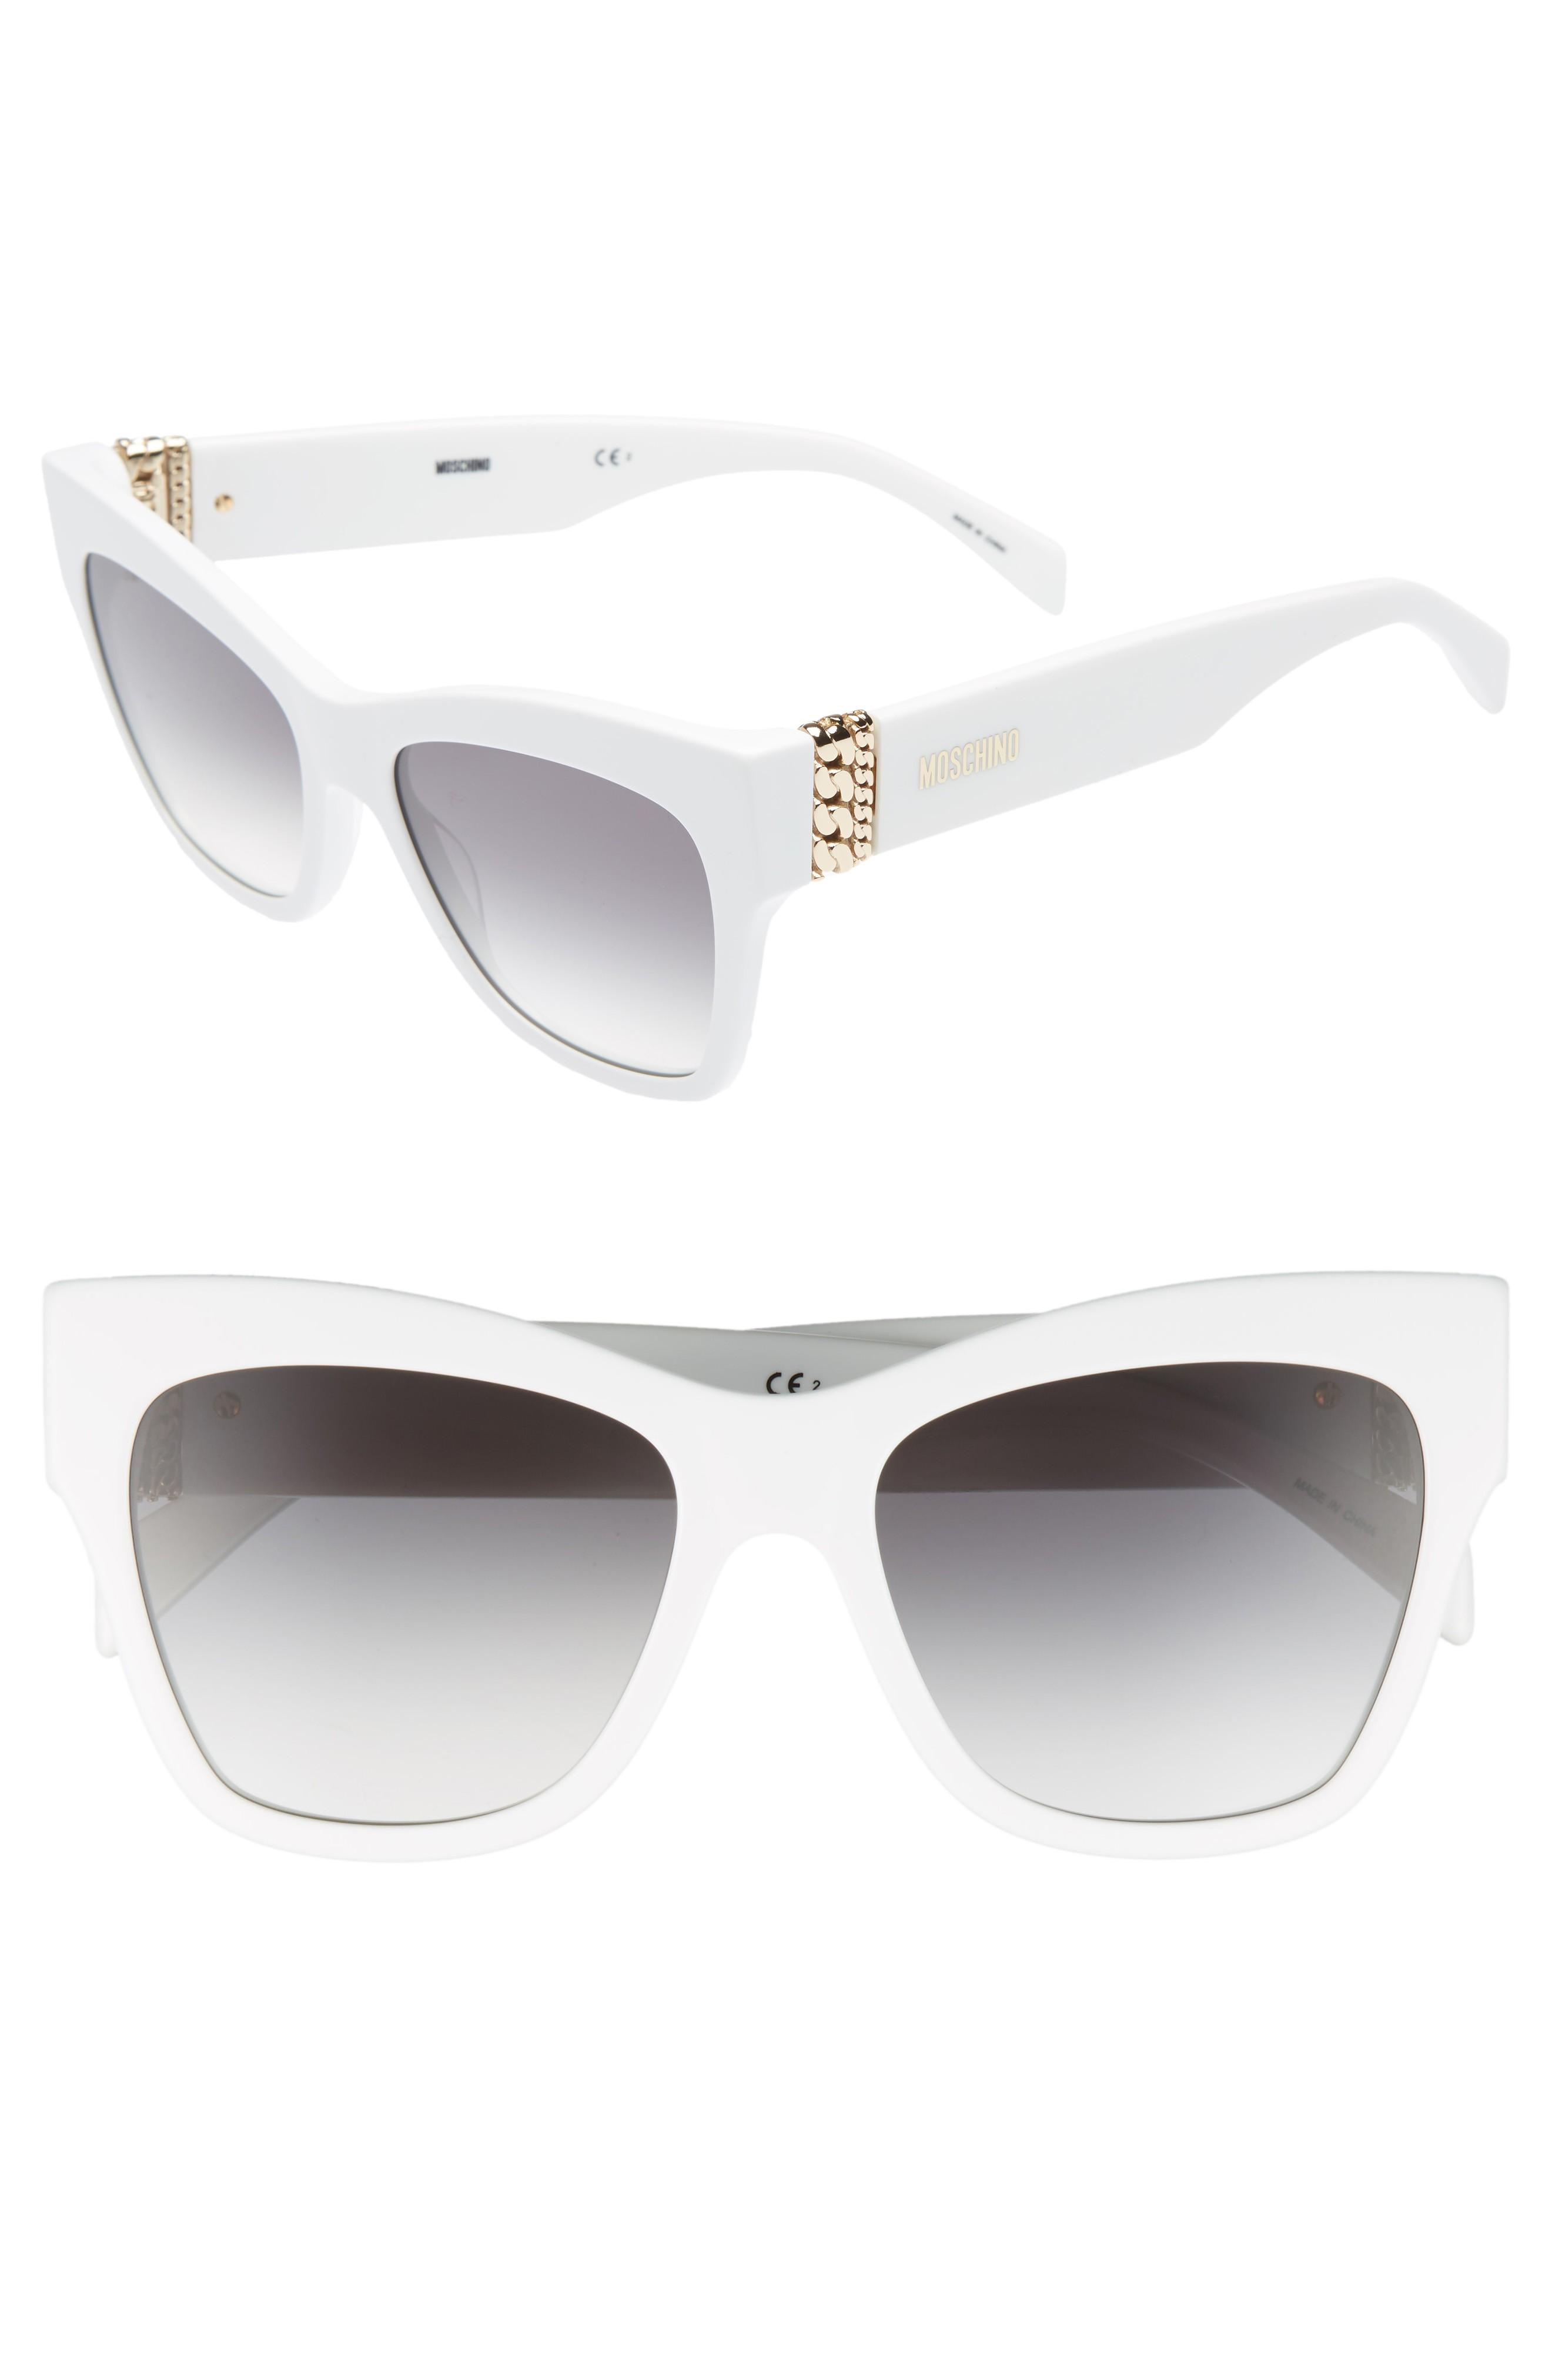 951477b052a8 A bold cat s eye silhouette plays up the retro glamour of svelte sunnies  agleam at the temples with polished chain-link detailing. Style Name   Moschino 53Mm ...